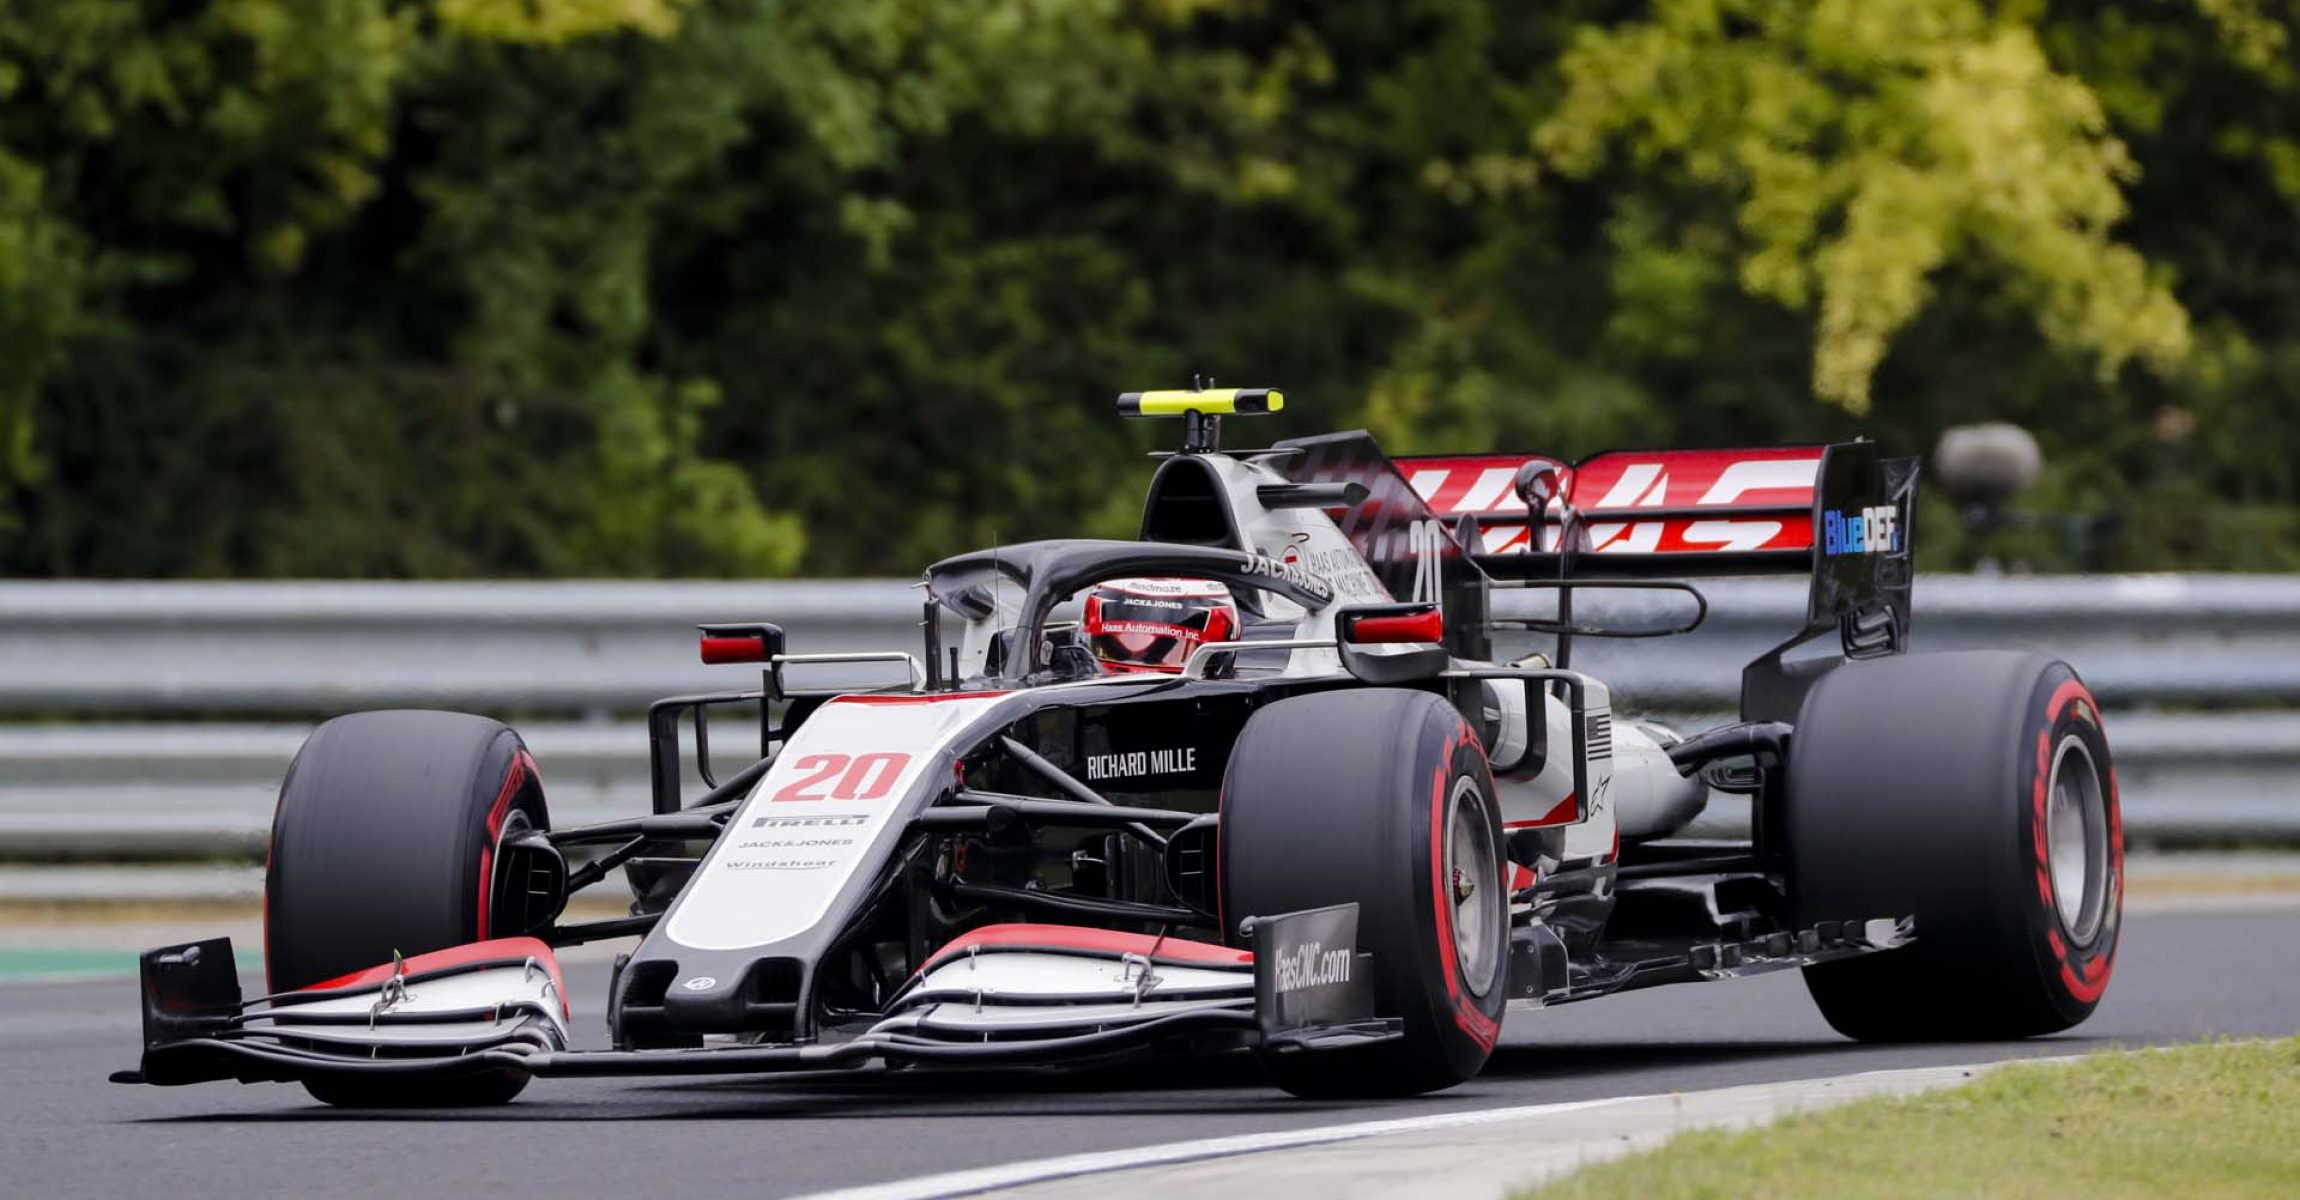 HUNGARORING, HUNGARY - JULY 18: Kevin Magnussen, Haas VF-20 during the Hungarian GP at Hungaroring on Saturday July 18, 2020 in Budapest, Hungary. (Photo by Steven Tee / LAT Images)